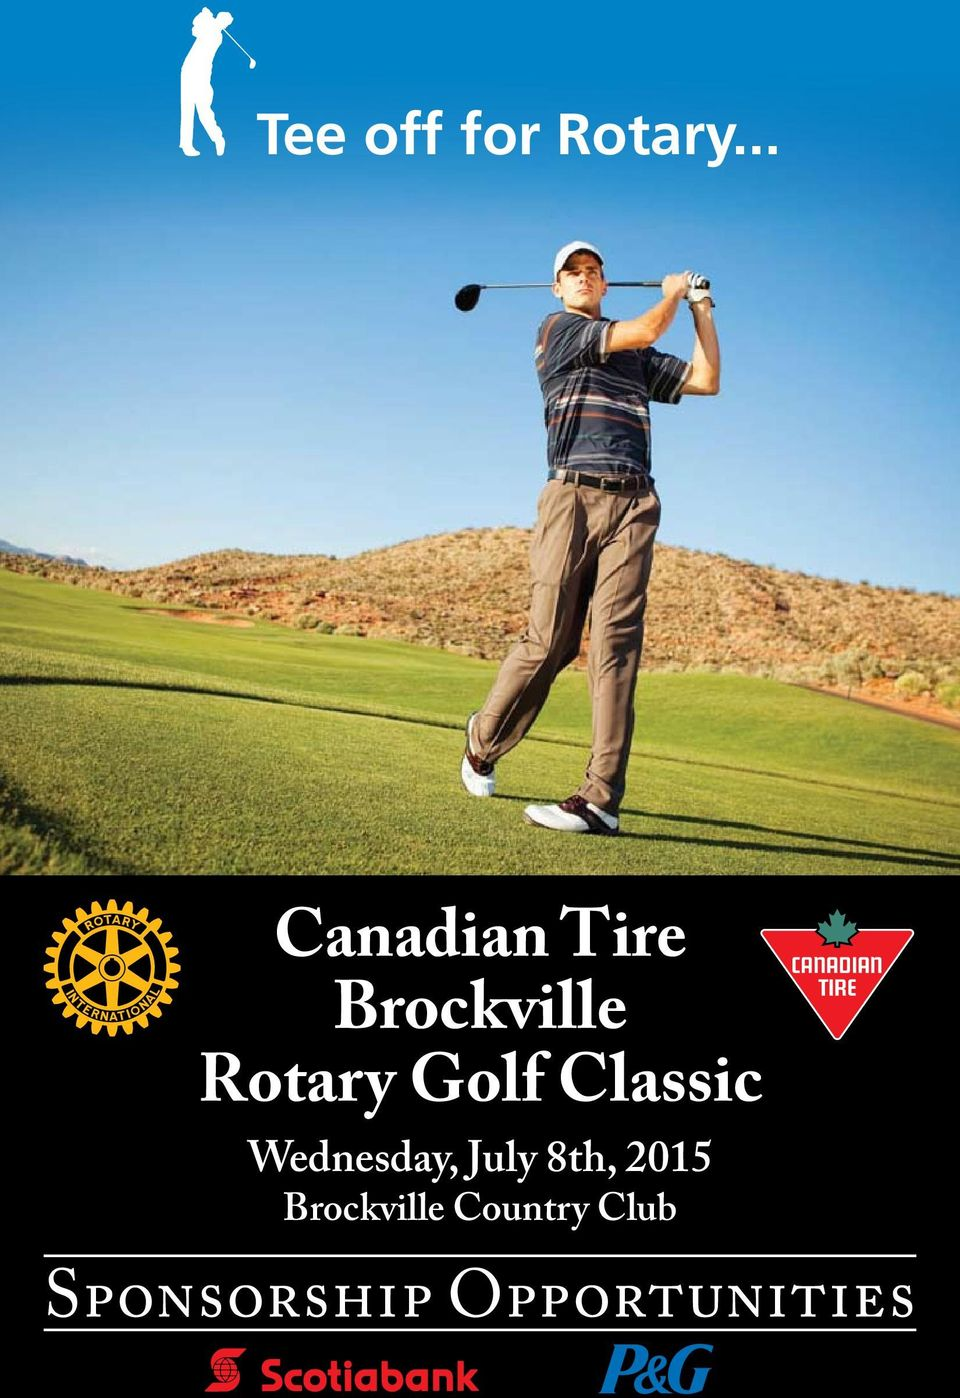 Golf Classic Wednesday, July 8th,